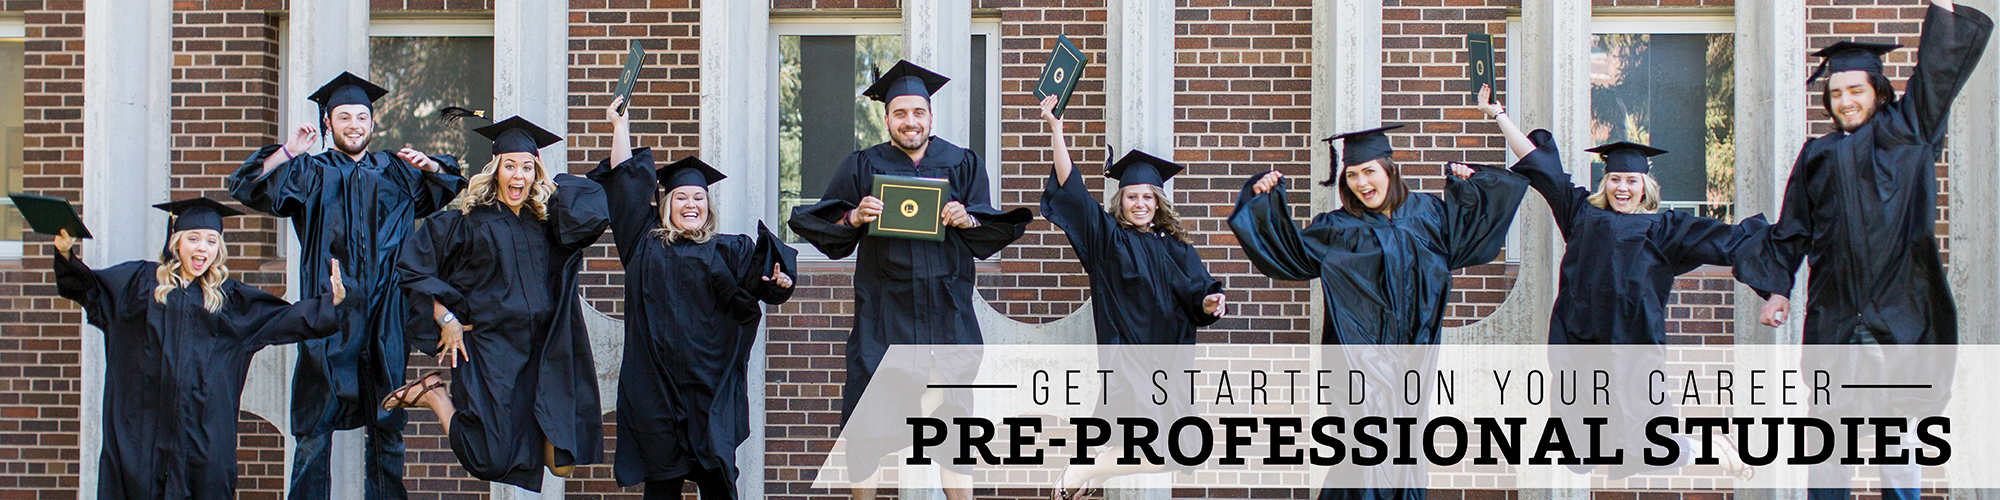 Learn more about the pre-professional programs at Black Hills State University.